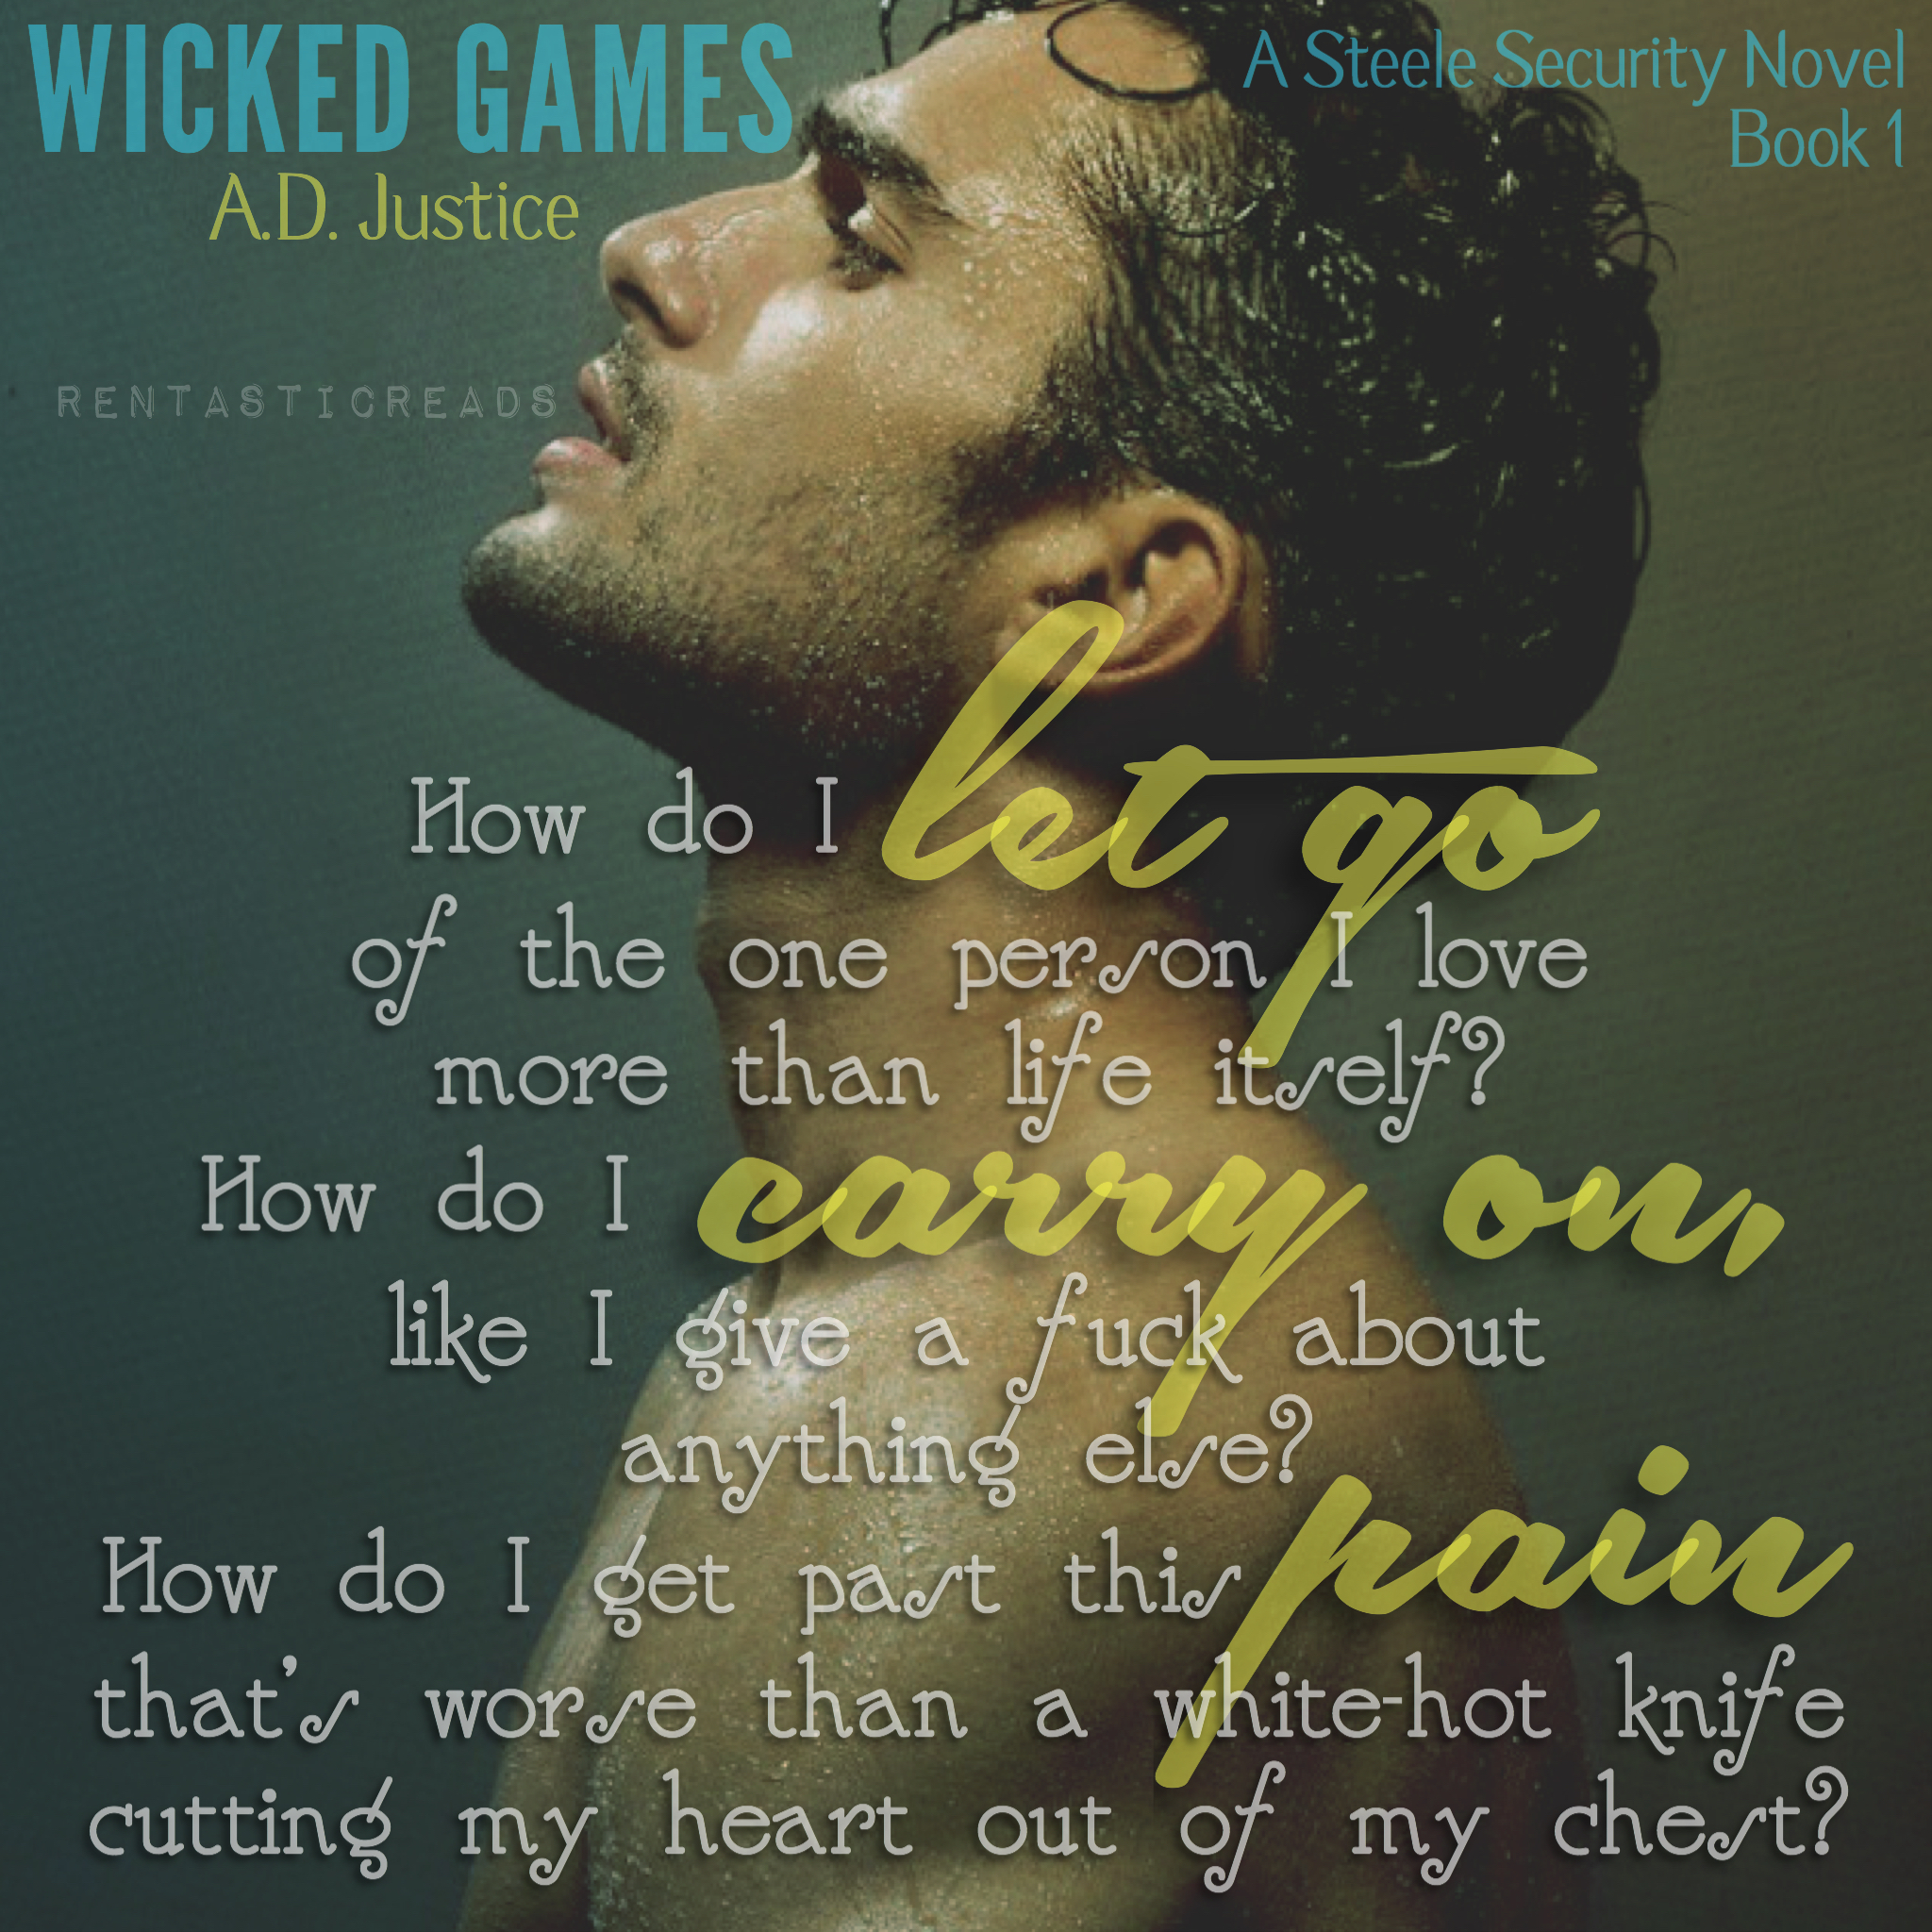 Wicked Games Teaser #1 - #RentasticReads #BabblingChatterReads